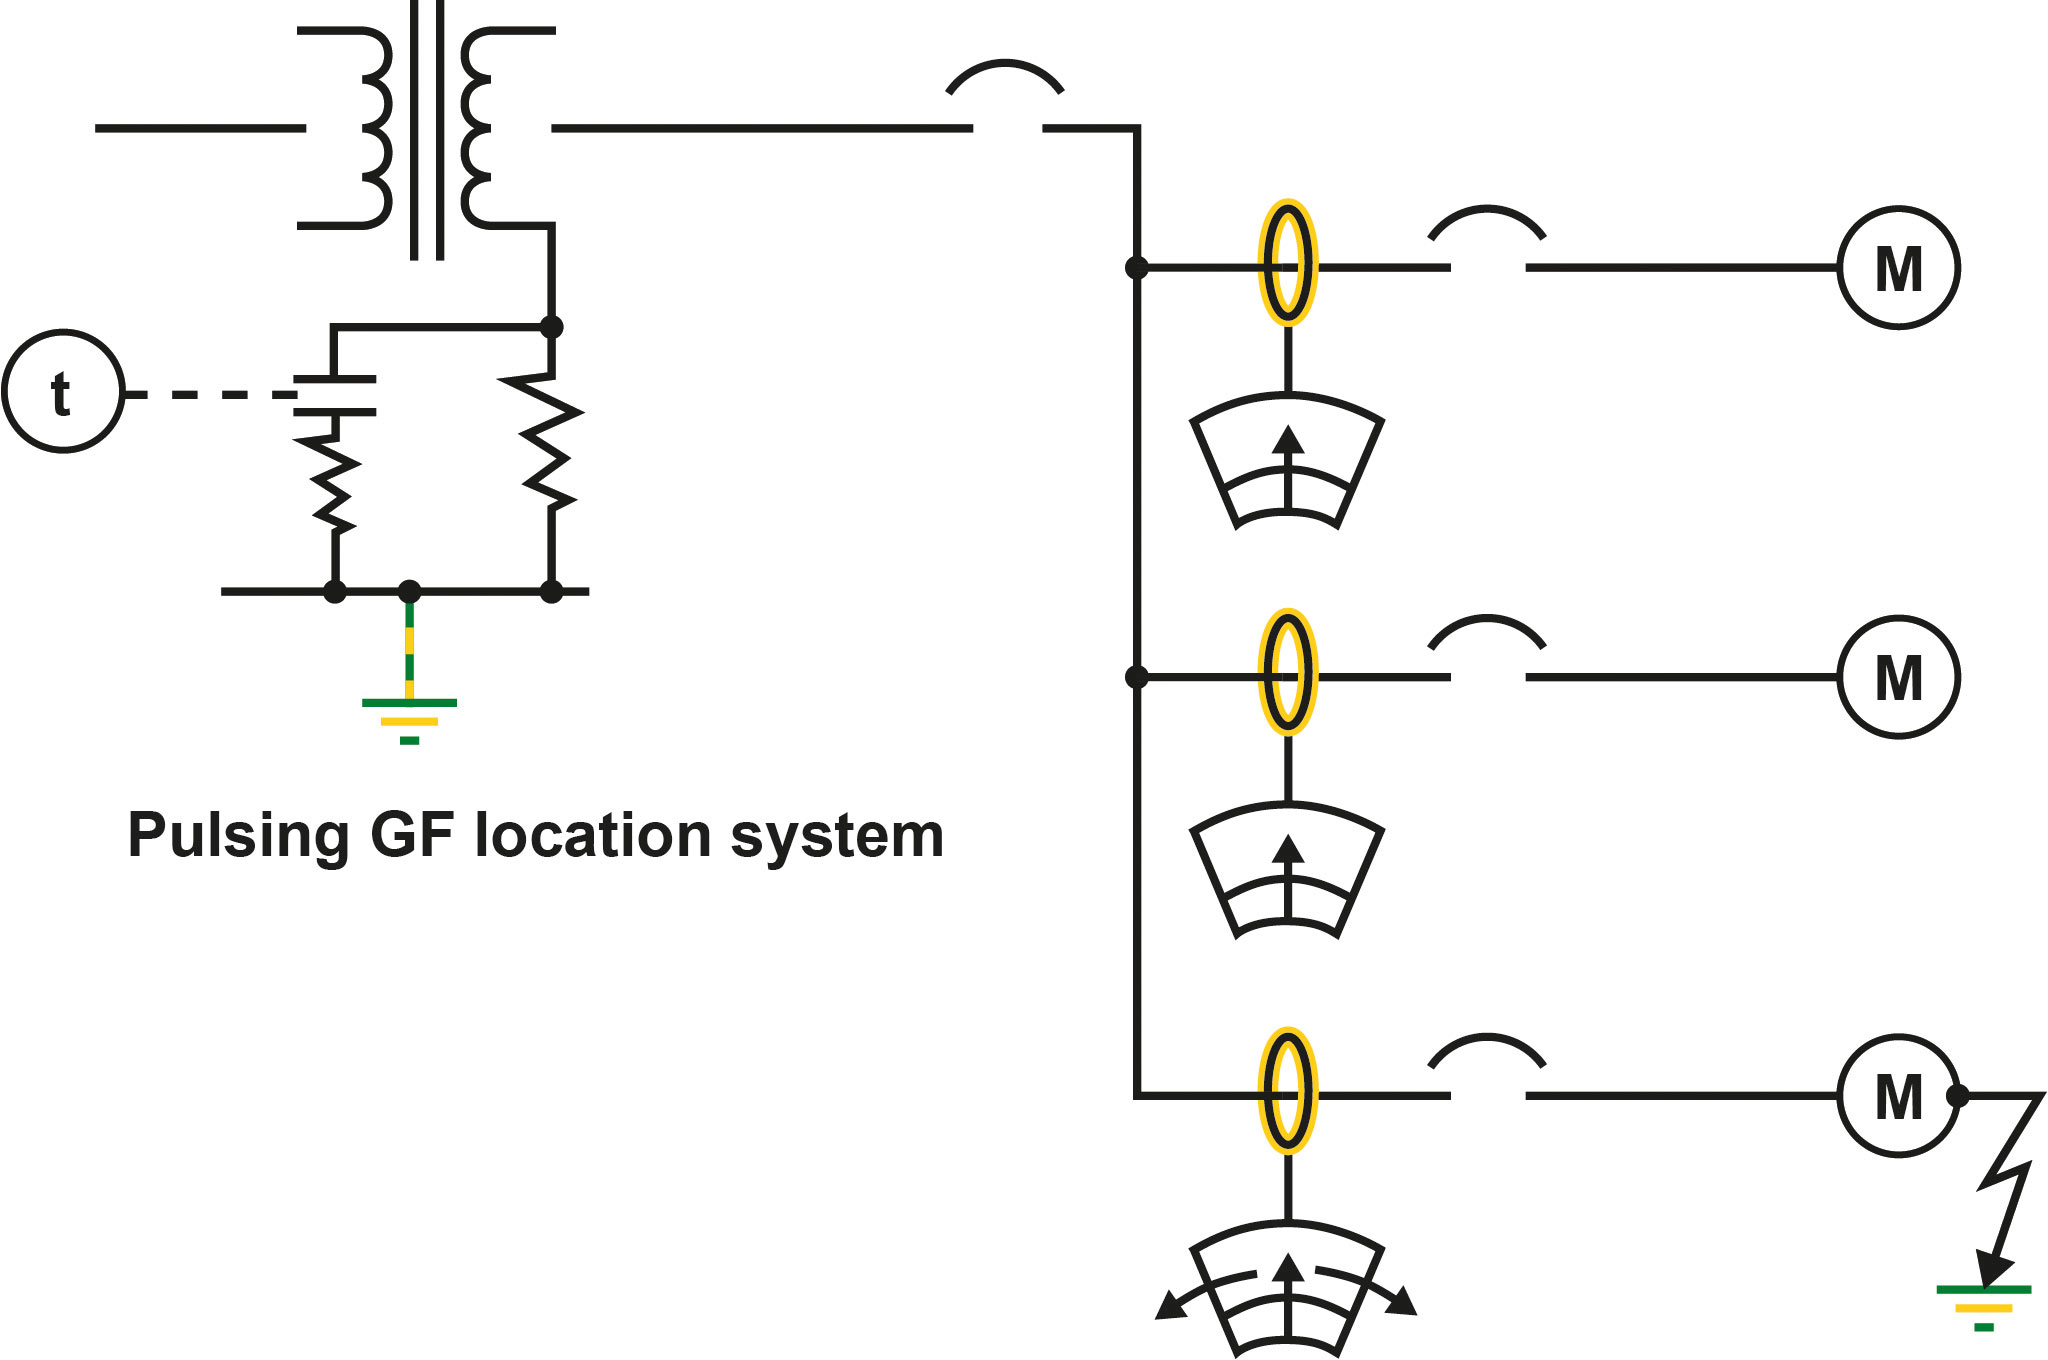 [Translate to english:] Pulsing ground-fault location system